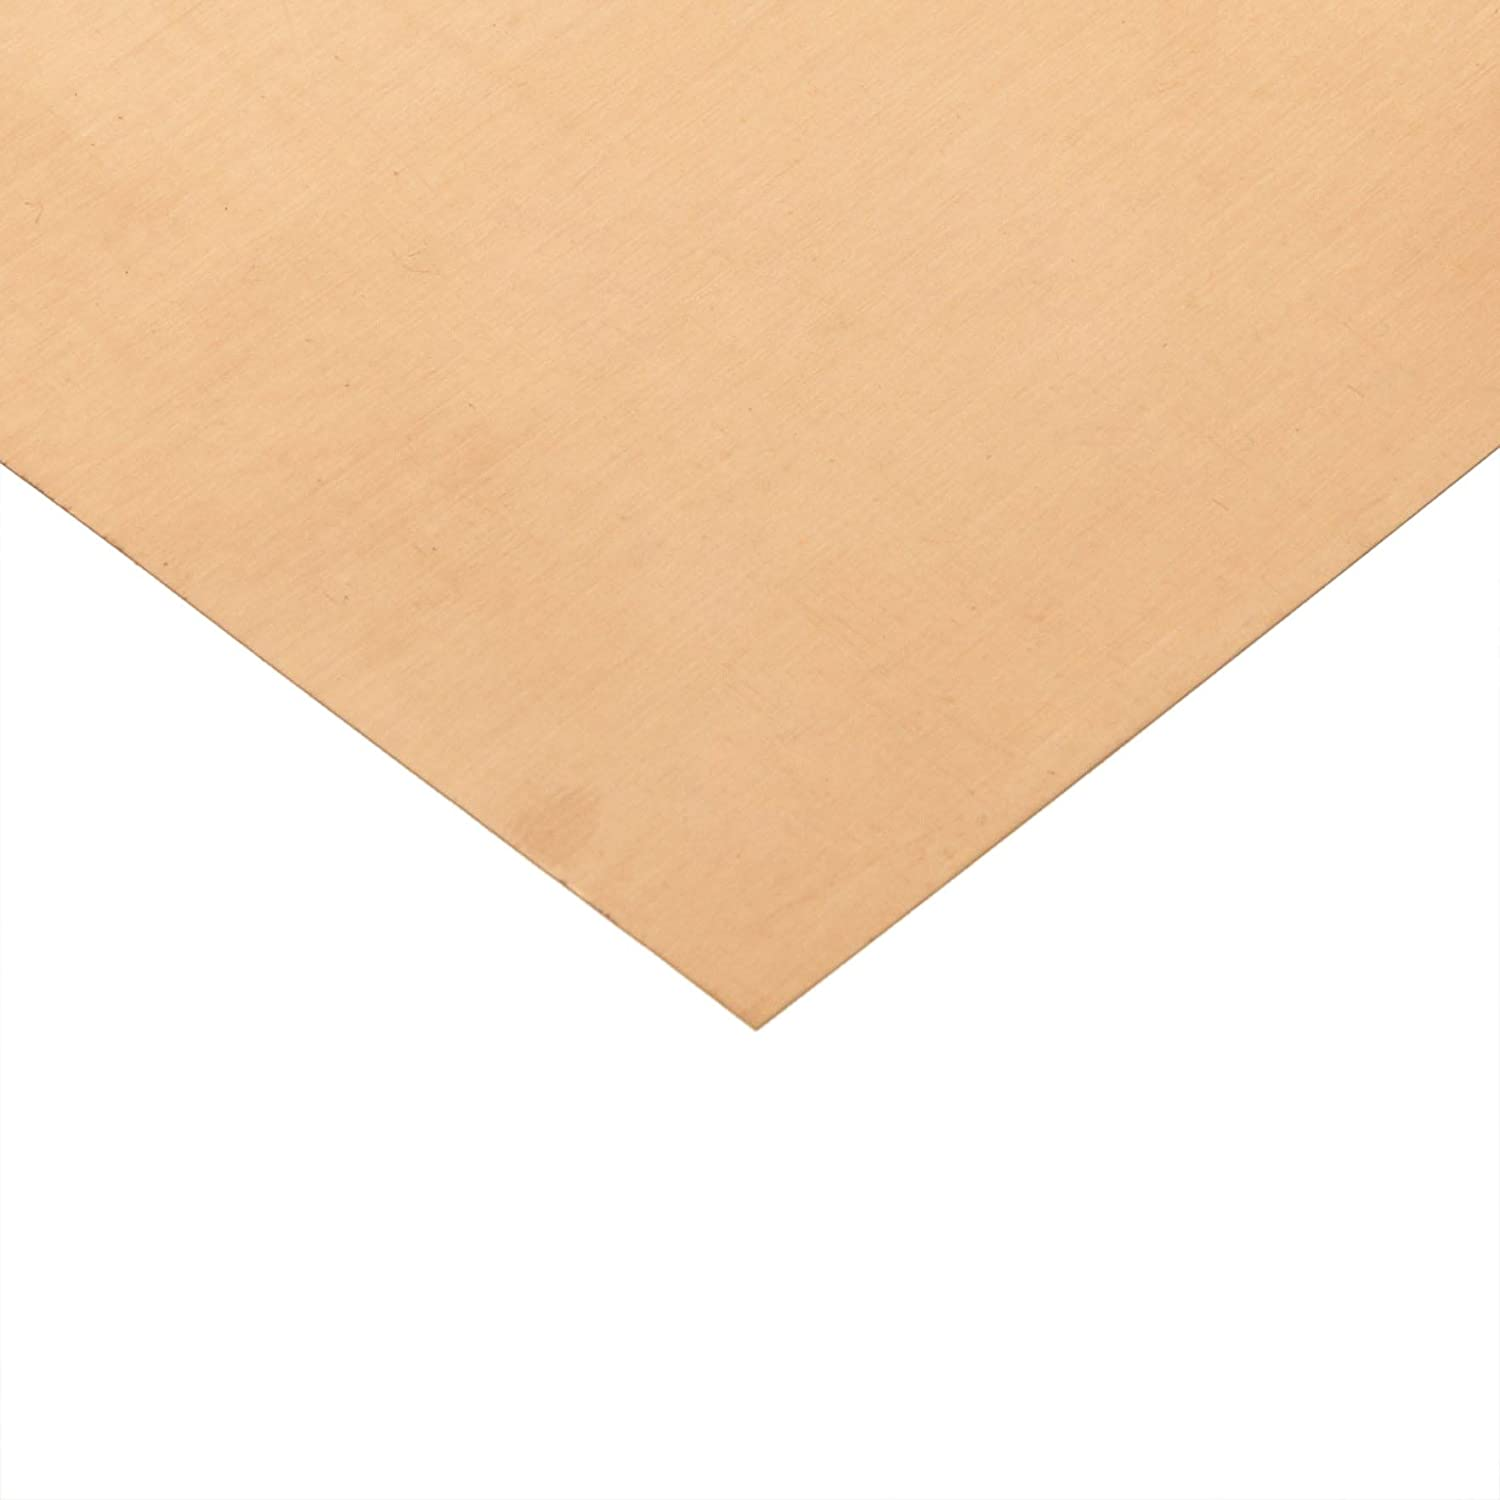 Amazon com: Beryllium Copper C172 Sheet, ASTM-B196